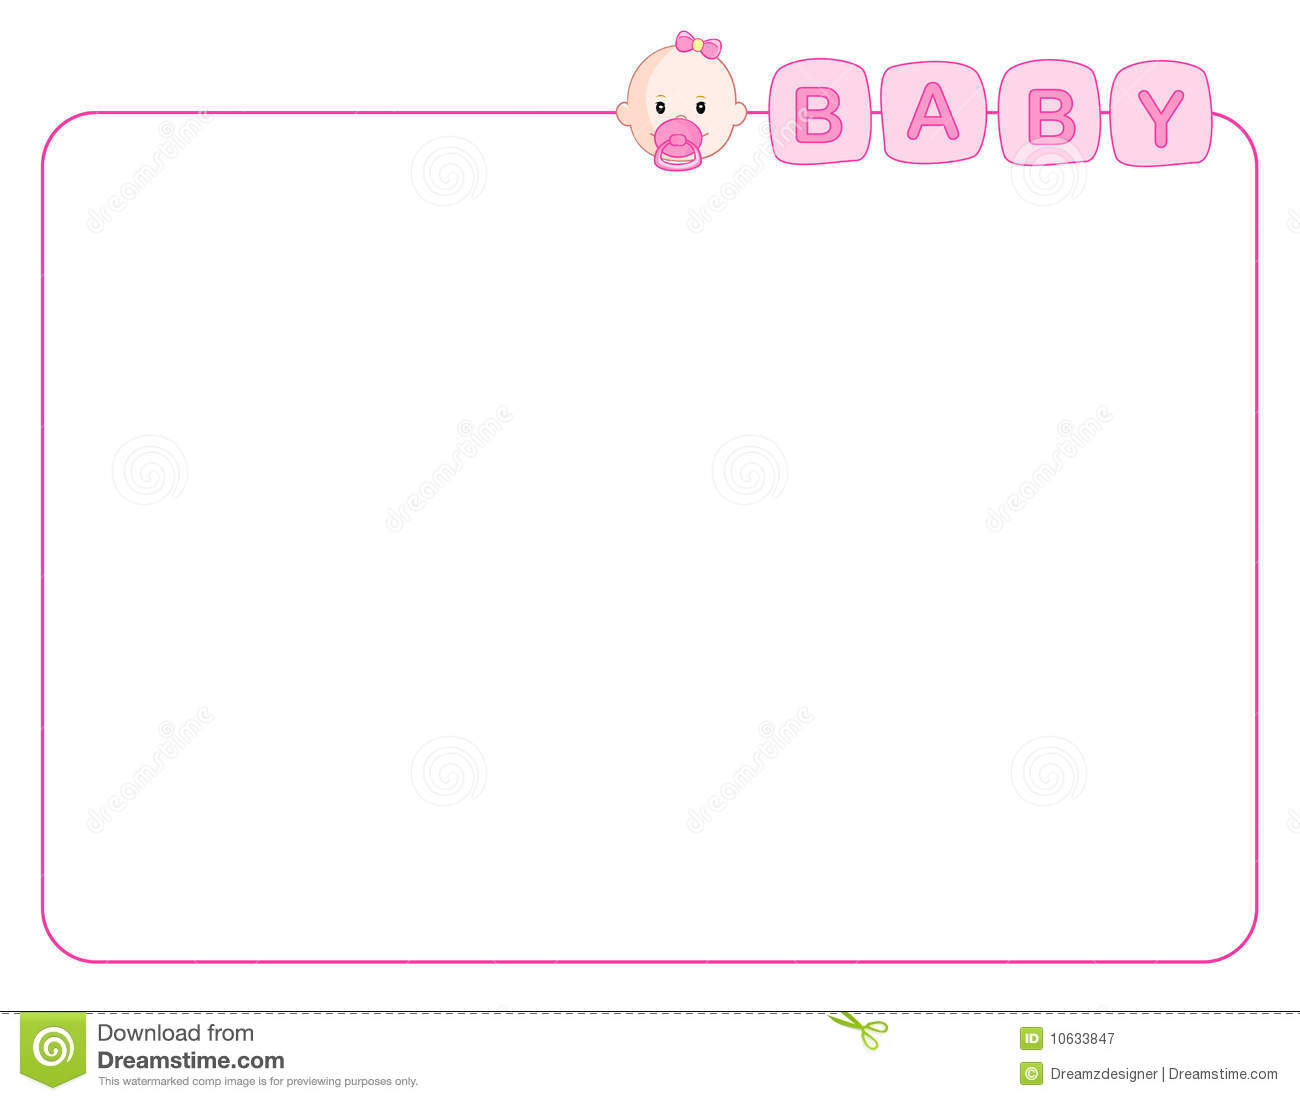 Clipart baby girl borders png transparent library Cute Girl Borders – Free wallpaper download png transparent library